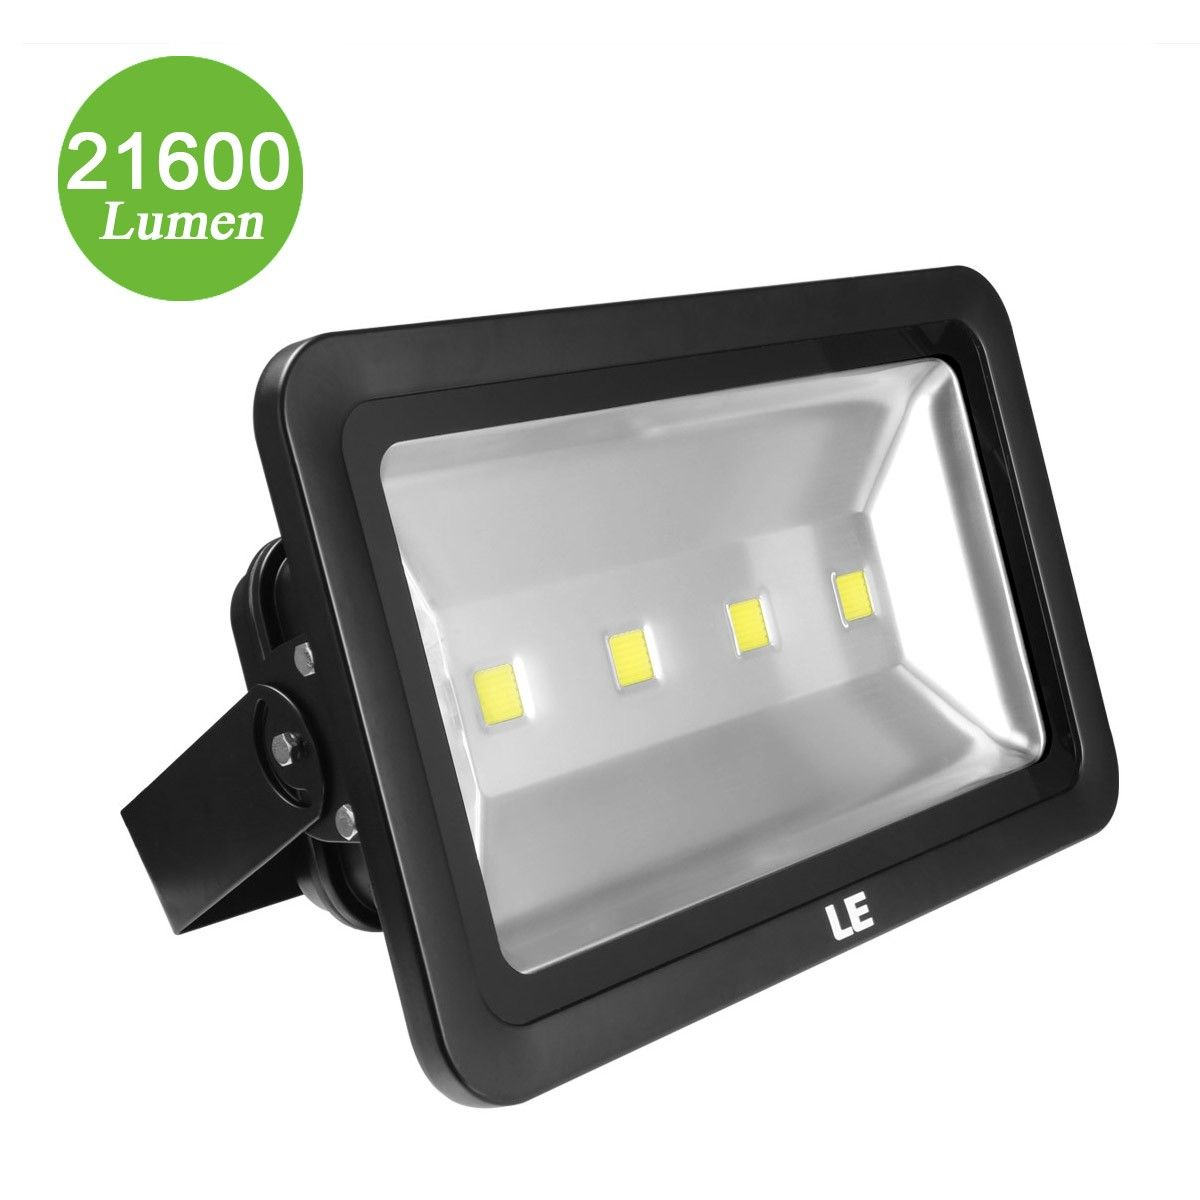 Led Outdoor Flood Light Bulbs Amusing High Power 200W Outdoor Security Led Flood Lights 600W Hps Design Inspiration